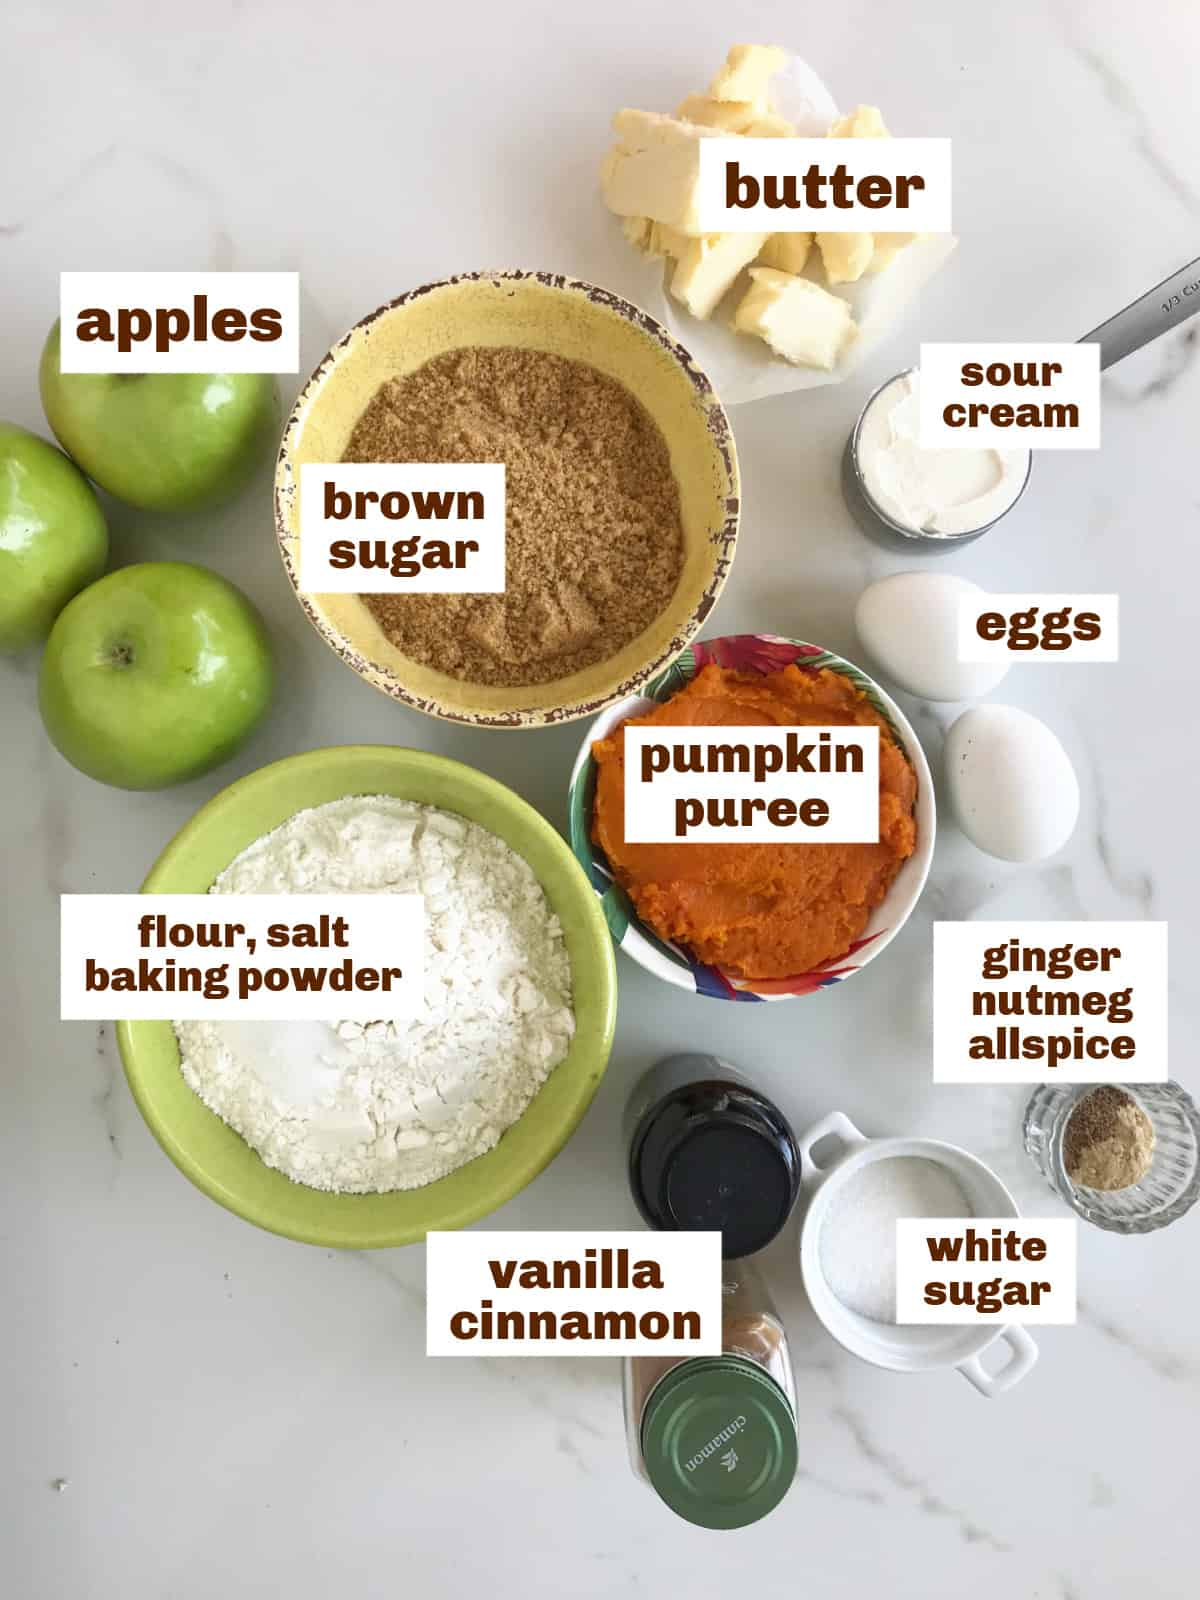 Different bowls with pumpkin apple cake ingredients, sugars, spices, whole apples